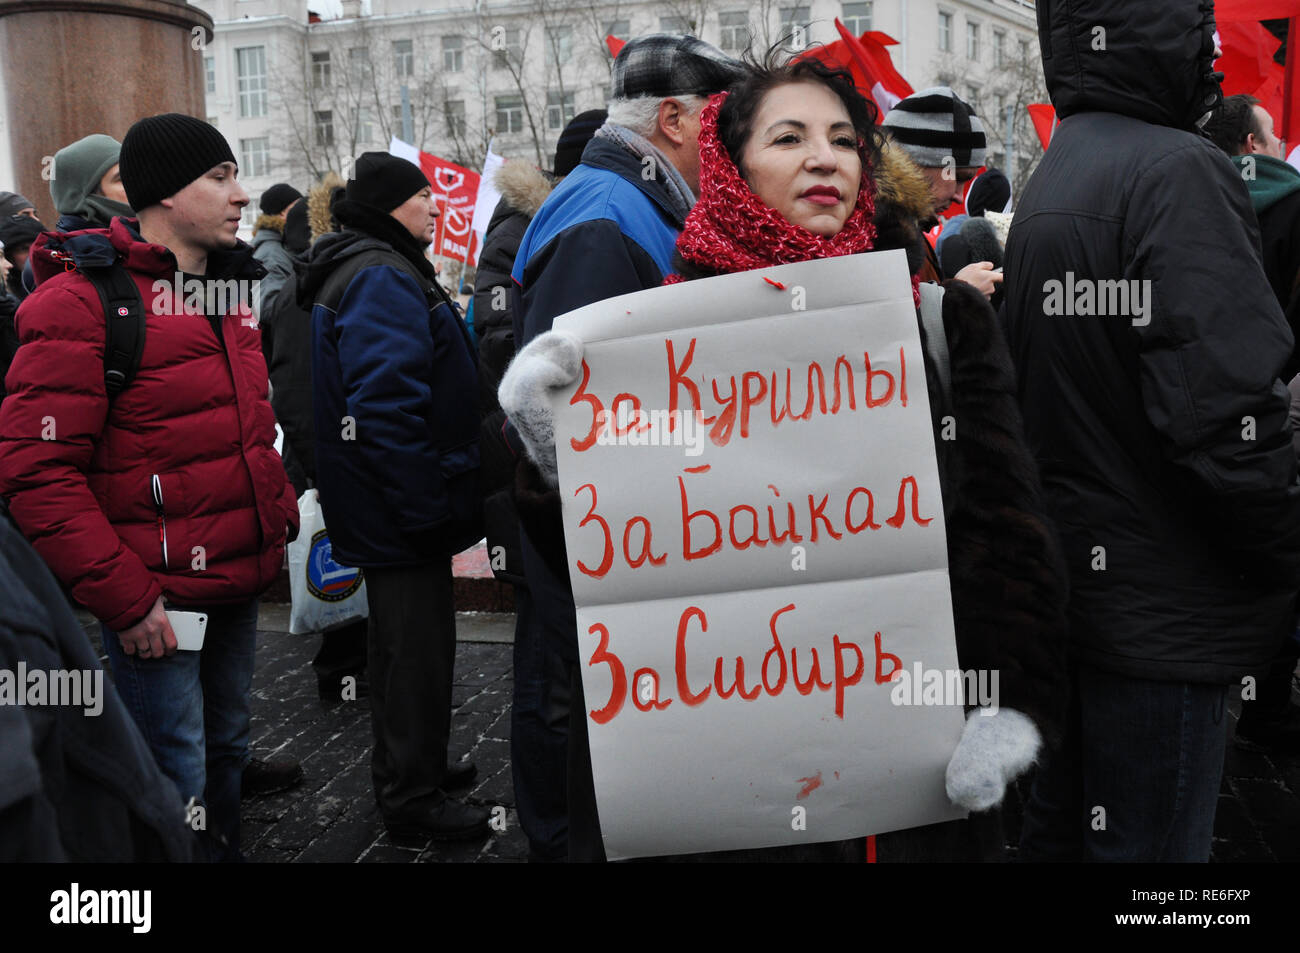 Moscow, Russia. 20th Jan, 2019. A woman is holding a sign that reads 'For the Kuril islands, for the Baikal lake, for Siberia'. Hundreds from both left and right protest possible handover of contested Kuril islands (Northern territories) to Japan at a rally in central Moscow. Credit: Aleks Lokhmutov/Alamy Live News. - Stock Image